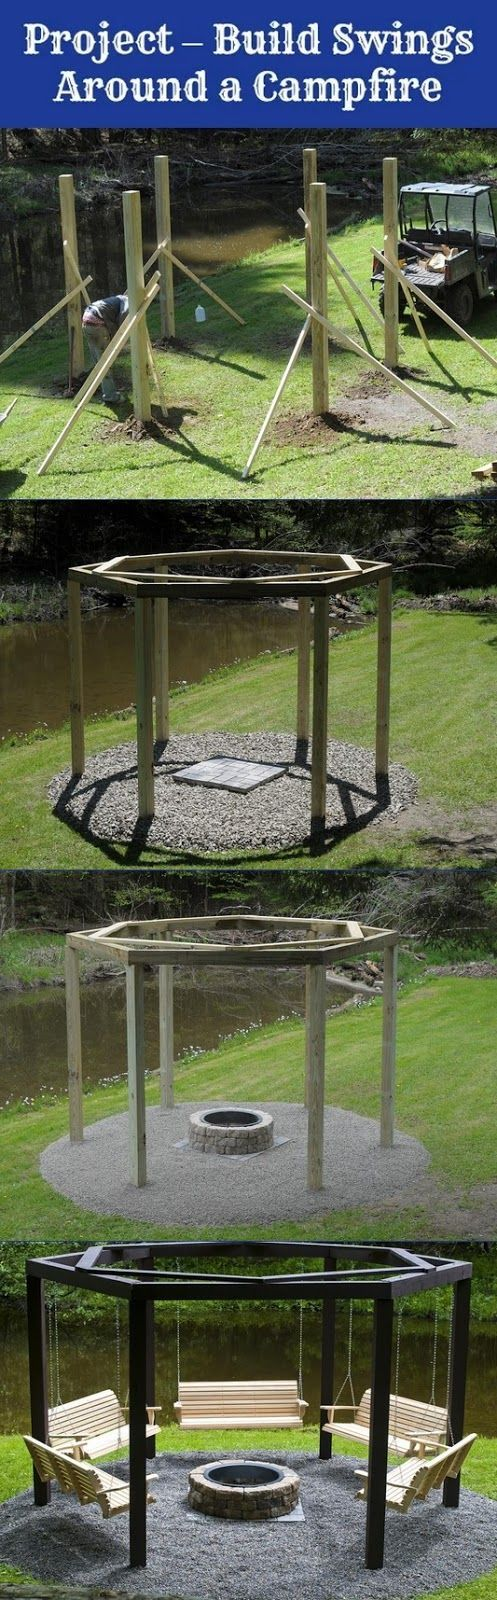 Maybe not quite so many swings but still a very neat idea